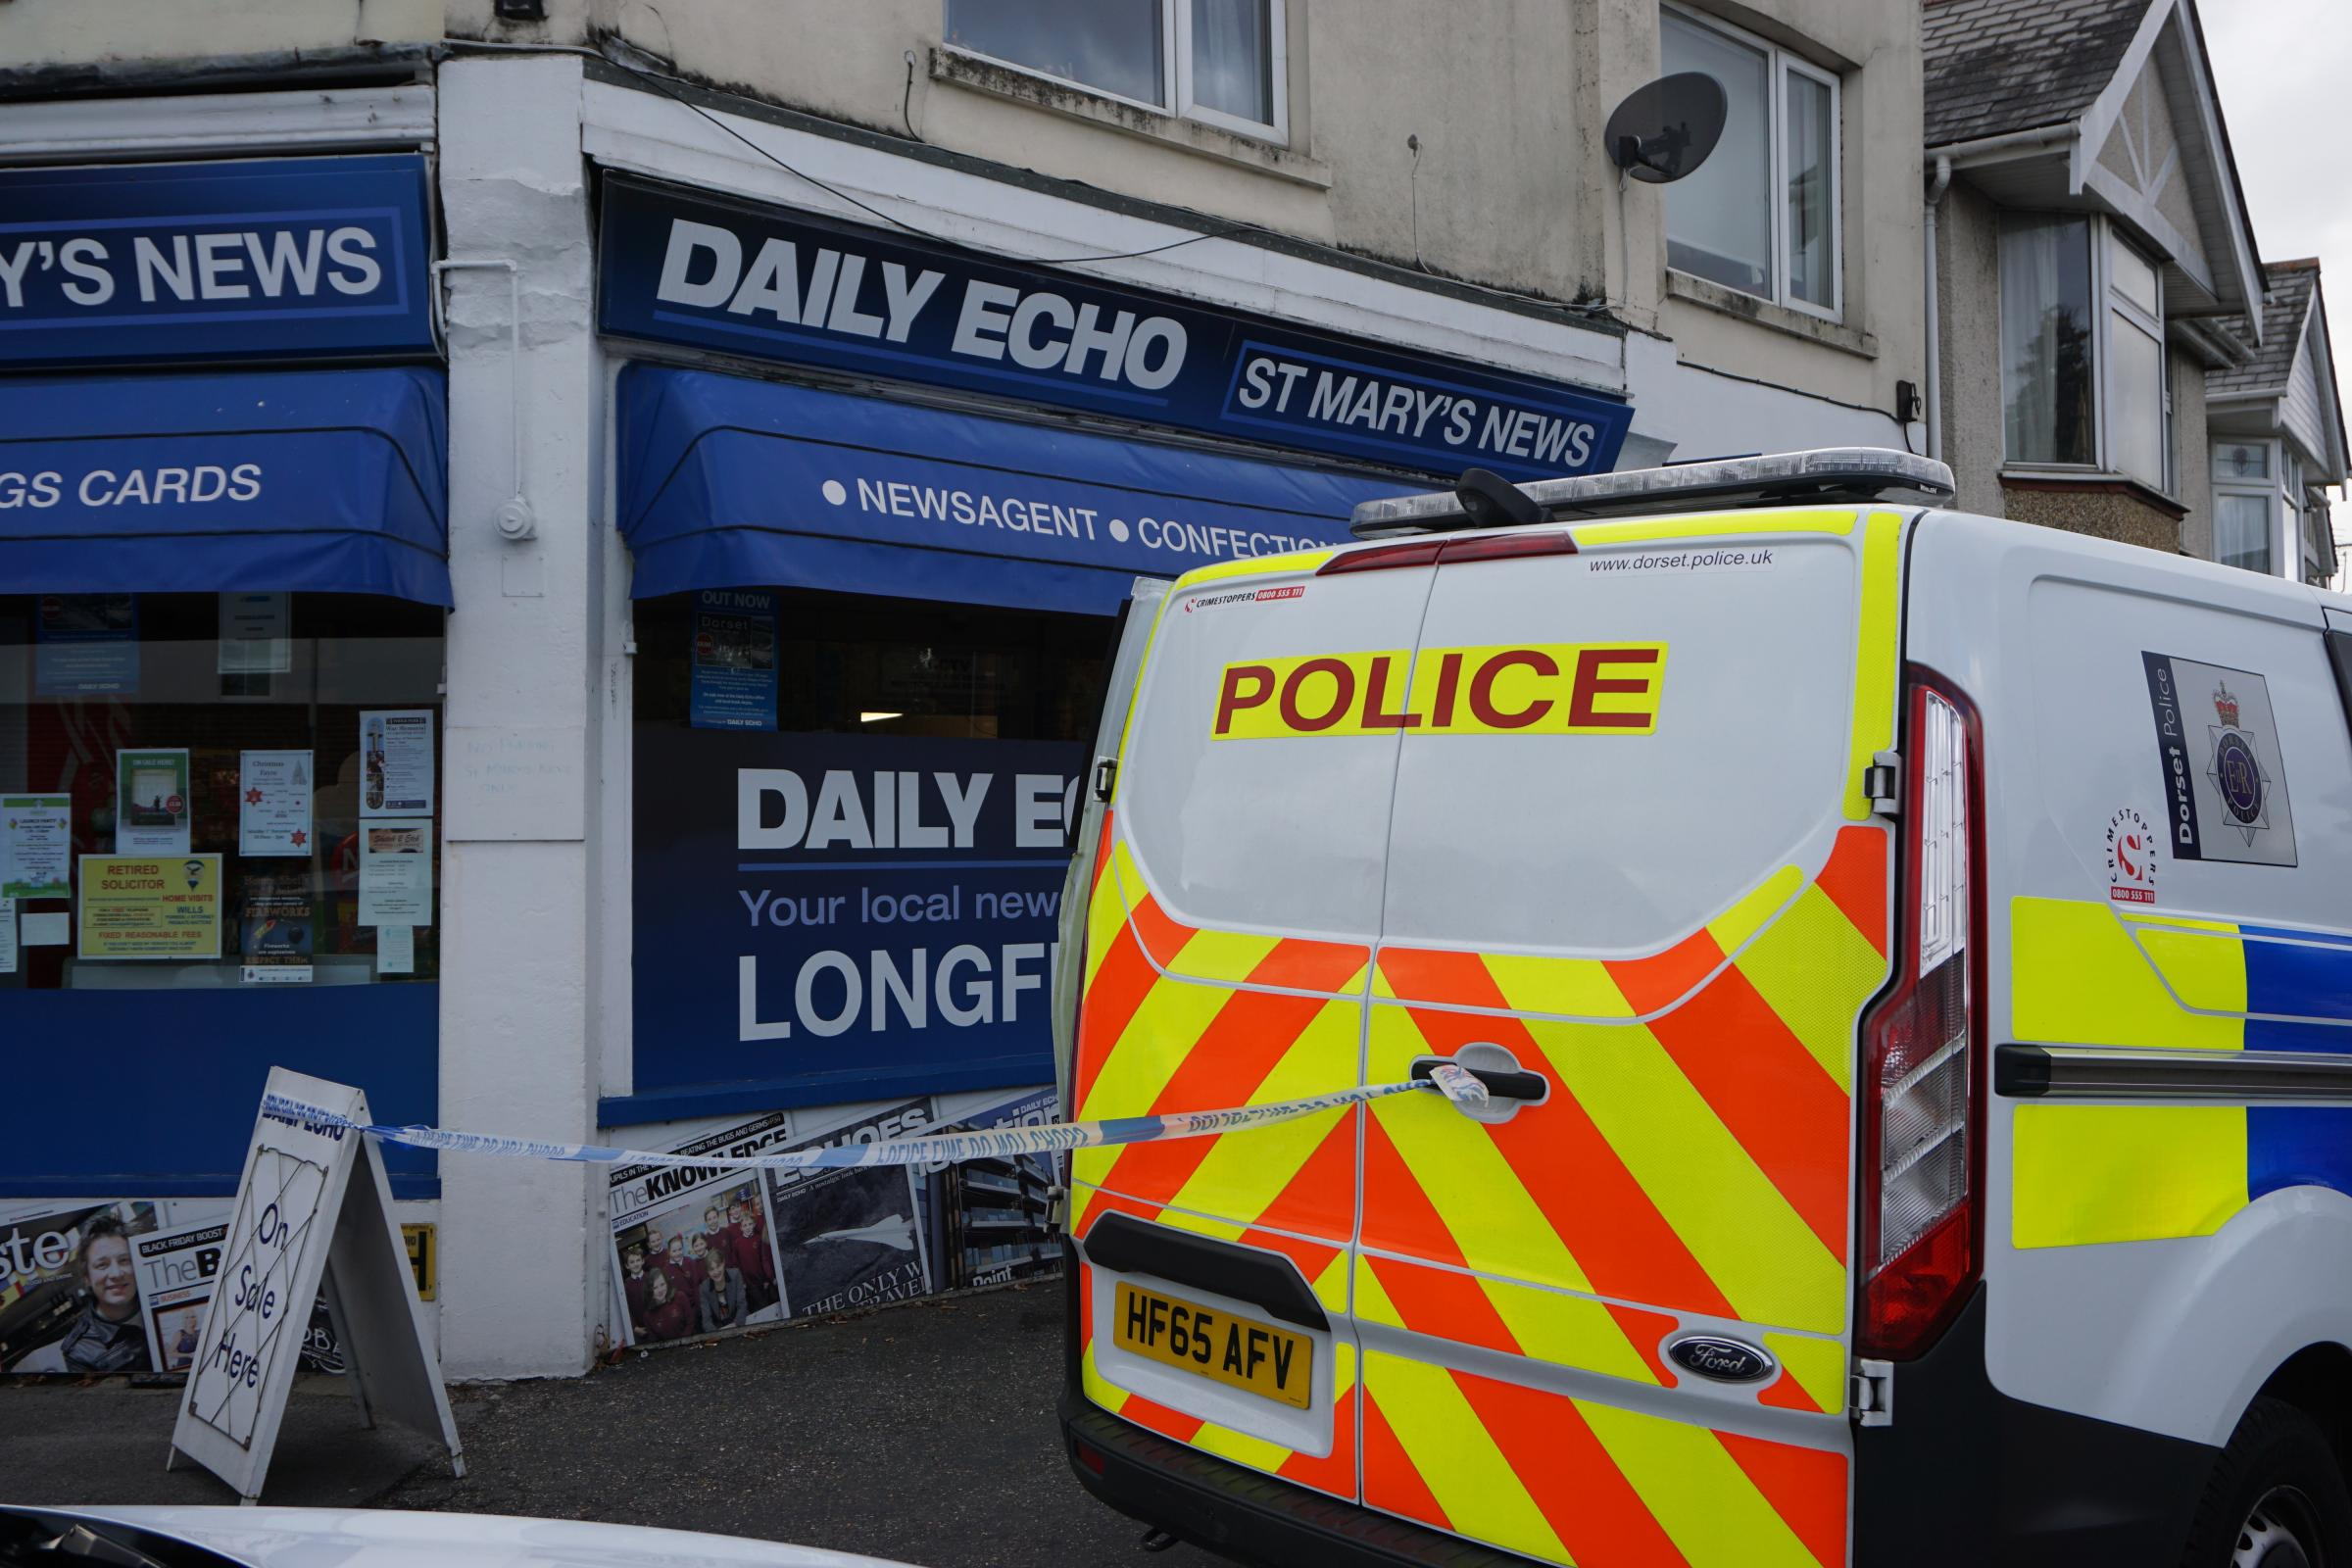 Police cordon off St Mary's News in Longfleet, Poole after an armed robbery on Tuesday morning